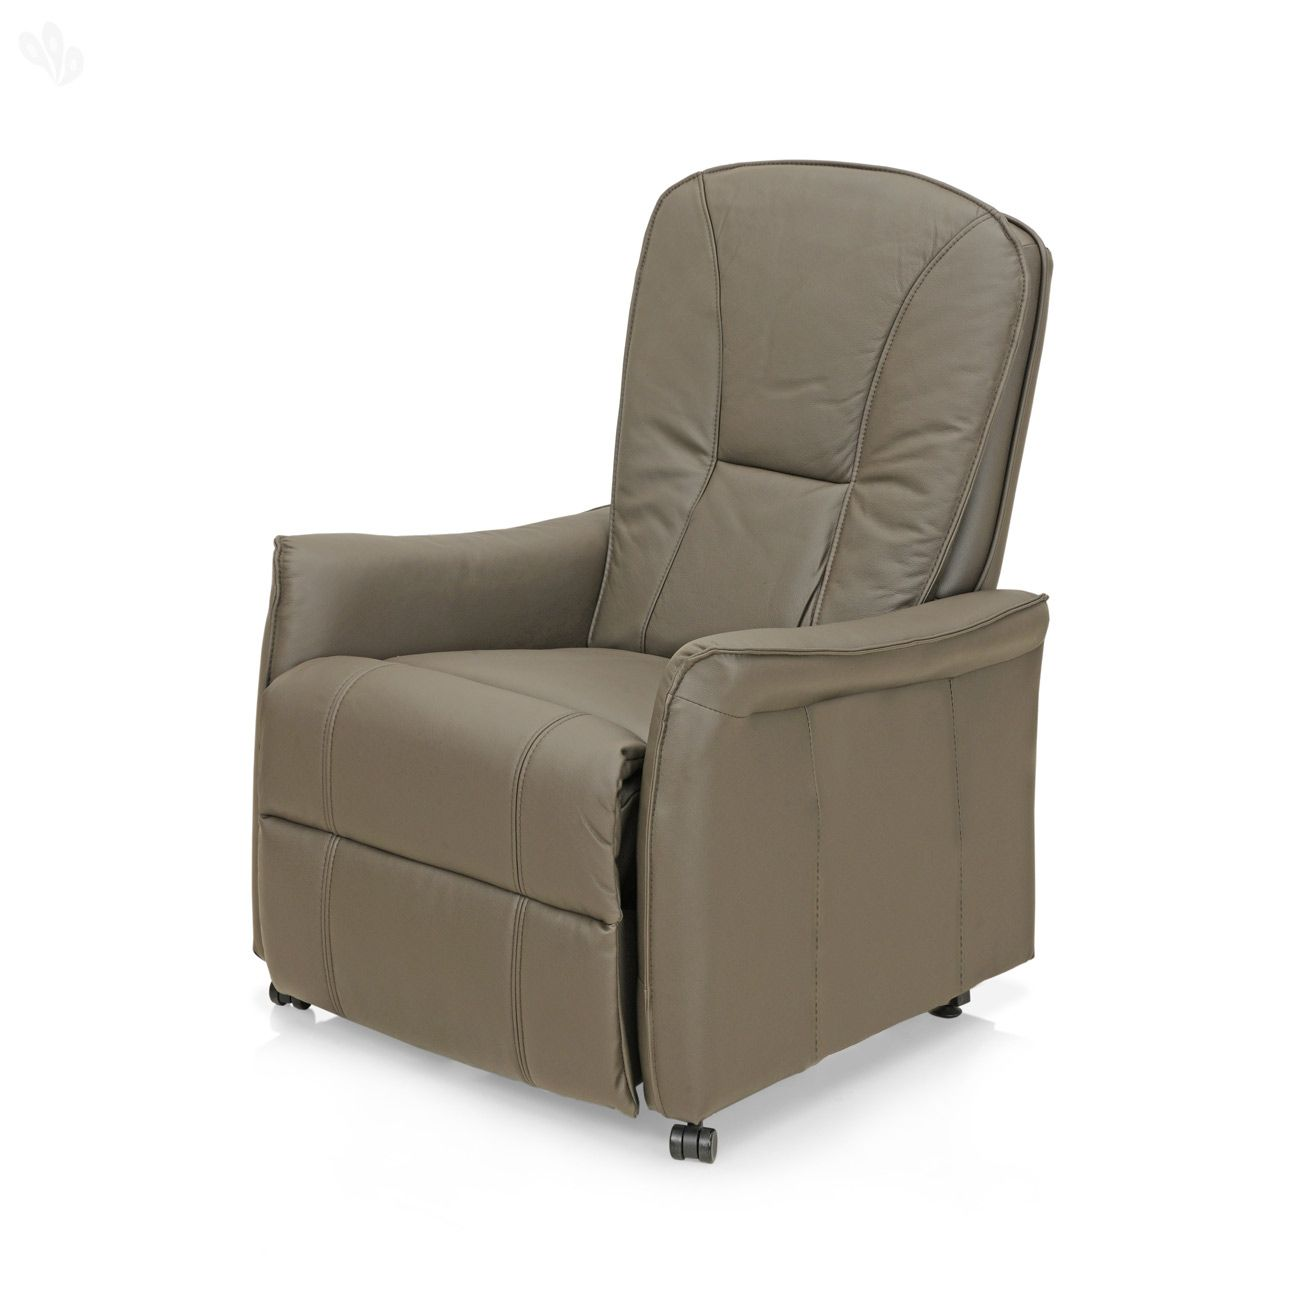 Royal Oak Amigo Recliner In Bottle Green Upholstery Online From India S Most Affordable Furniture Brand Royaloak